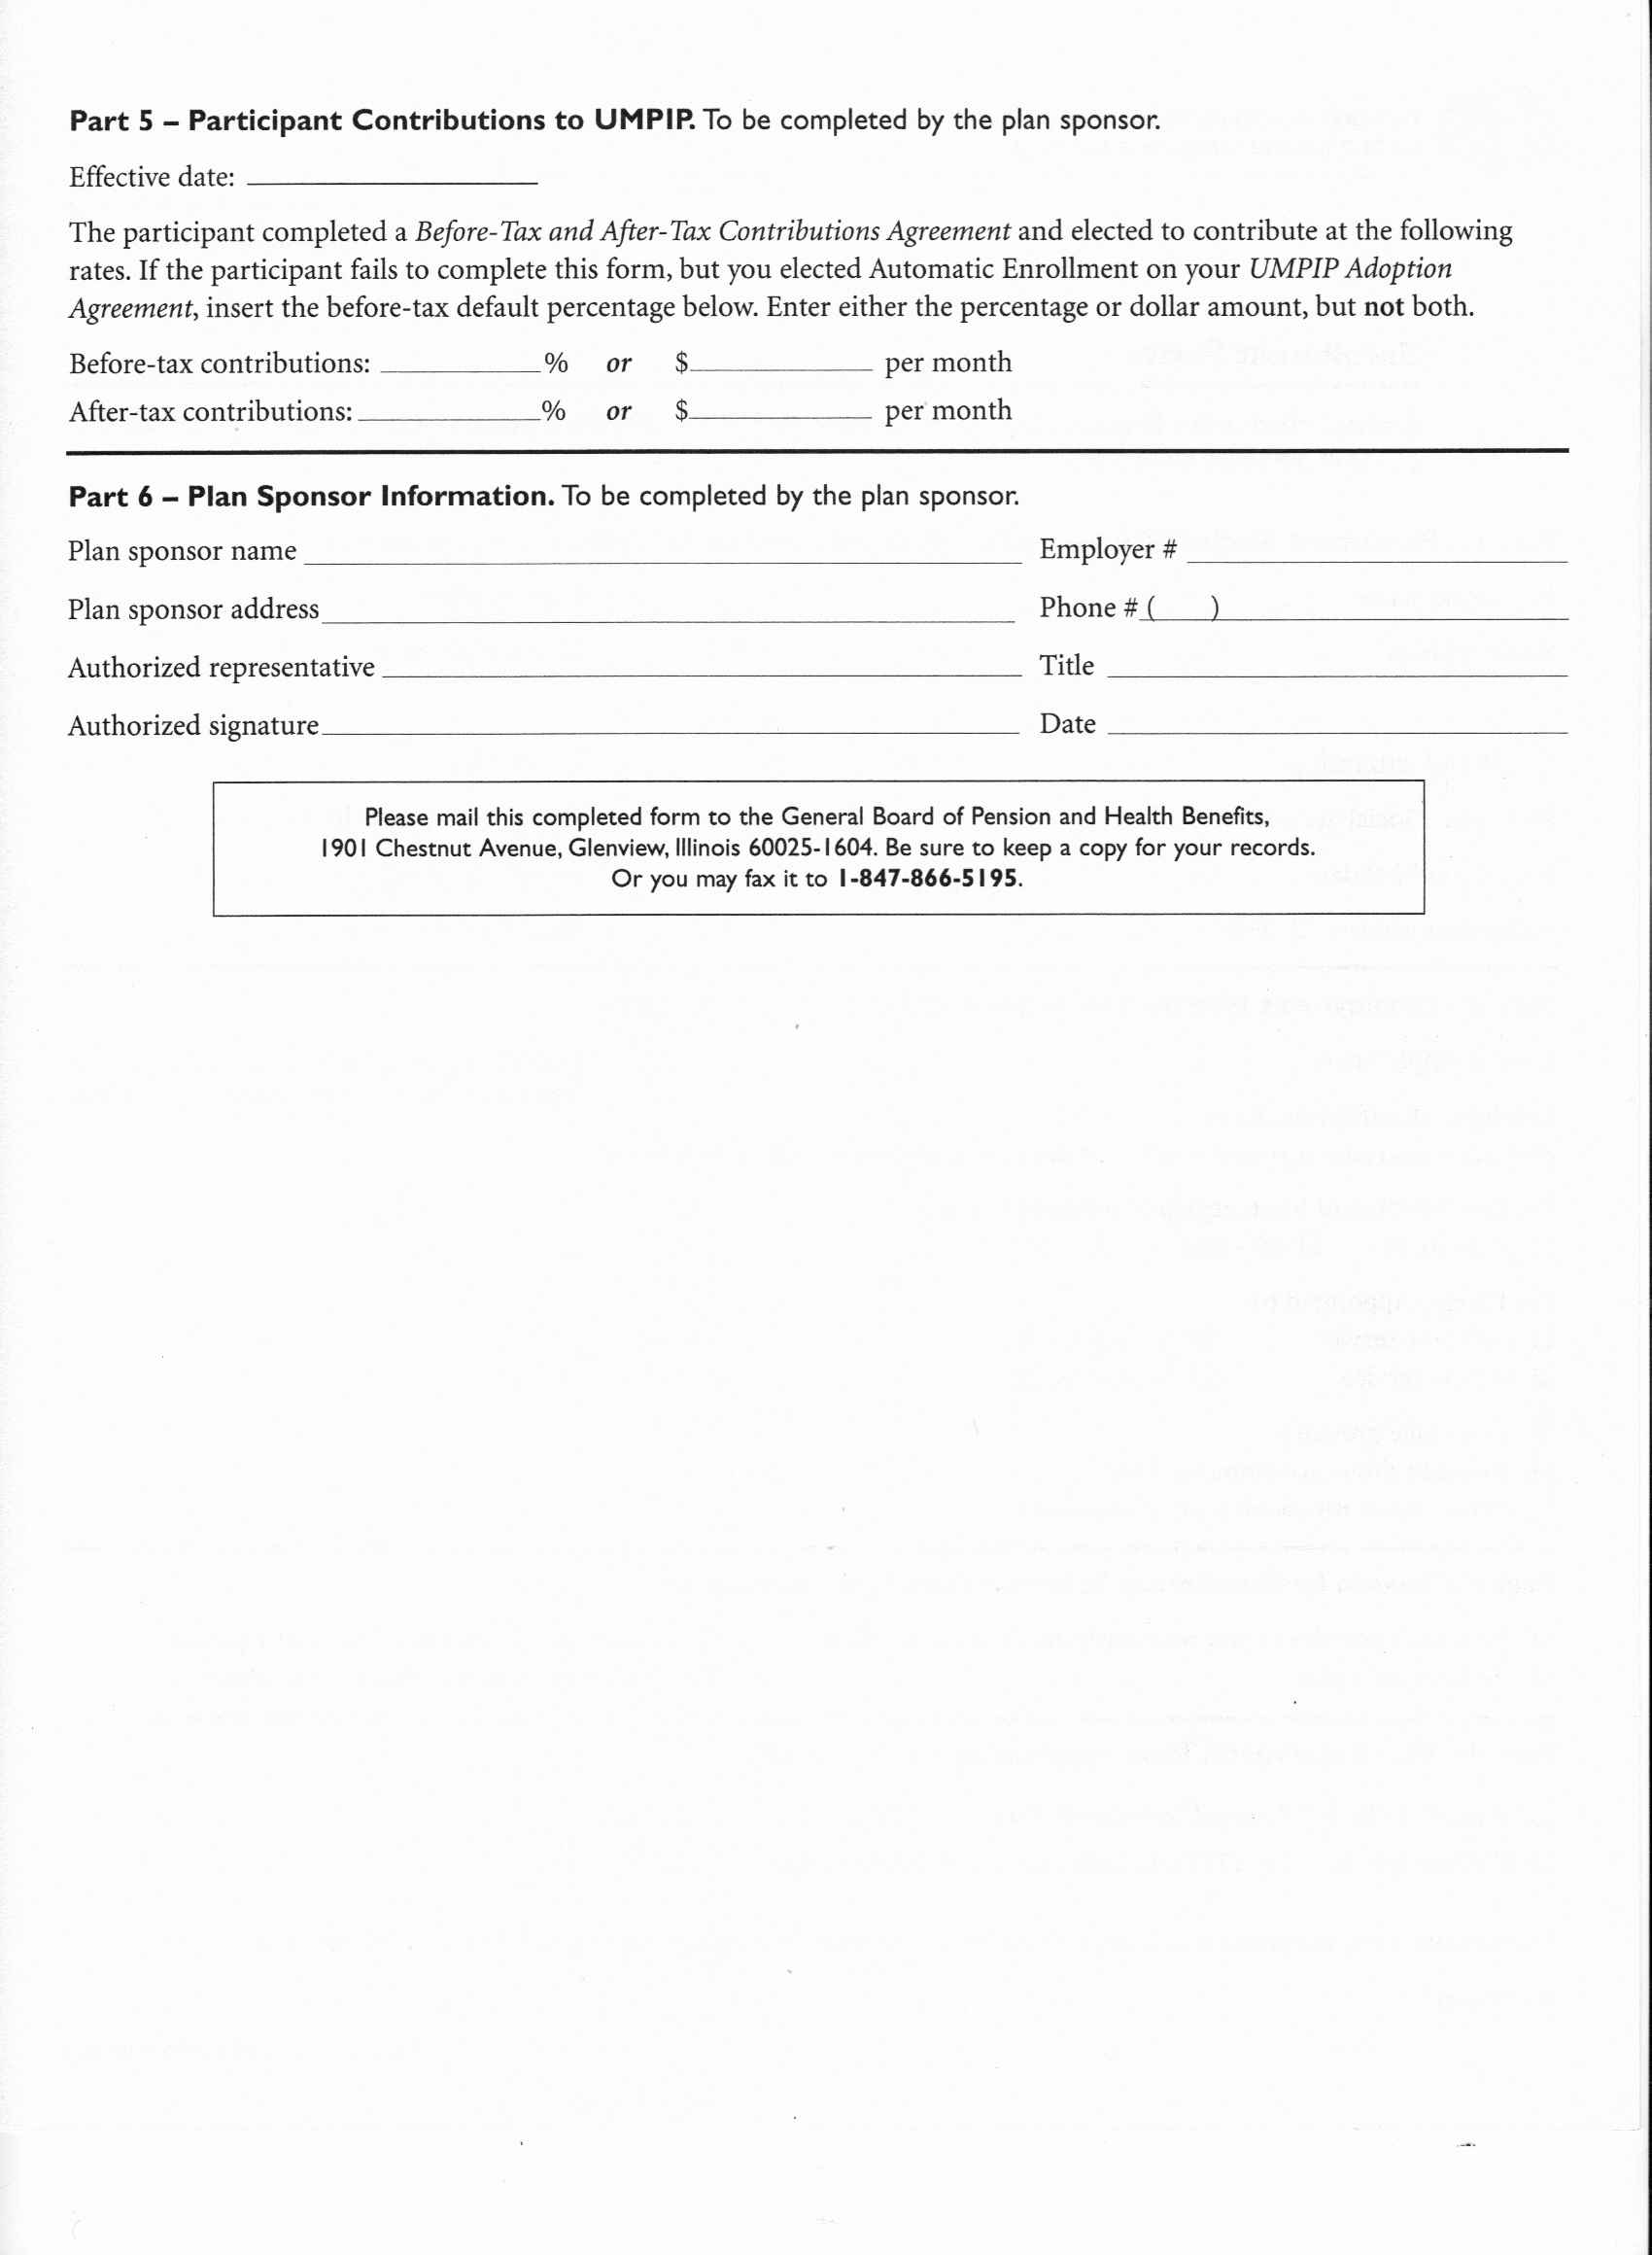 Investment Election Form